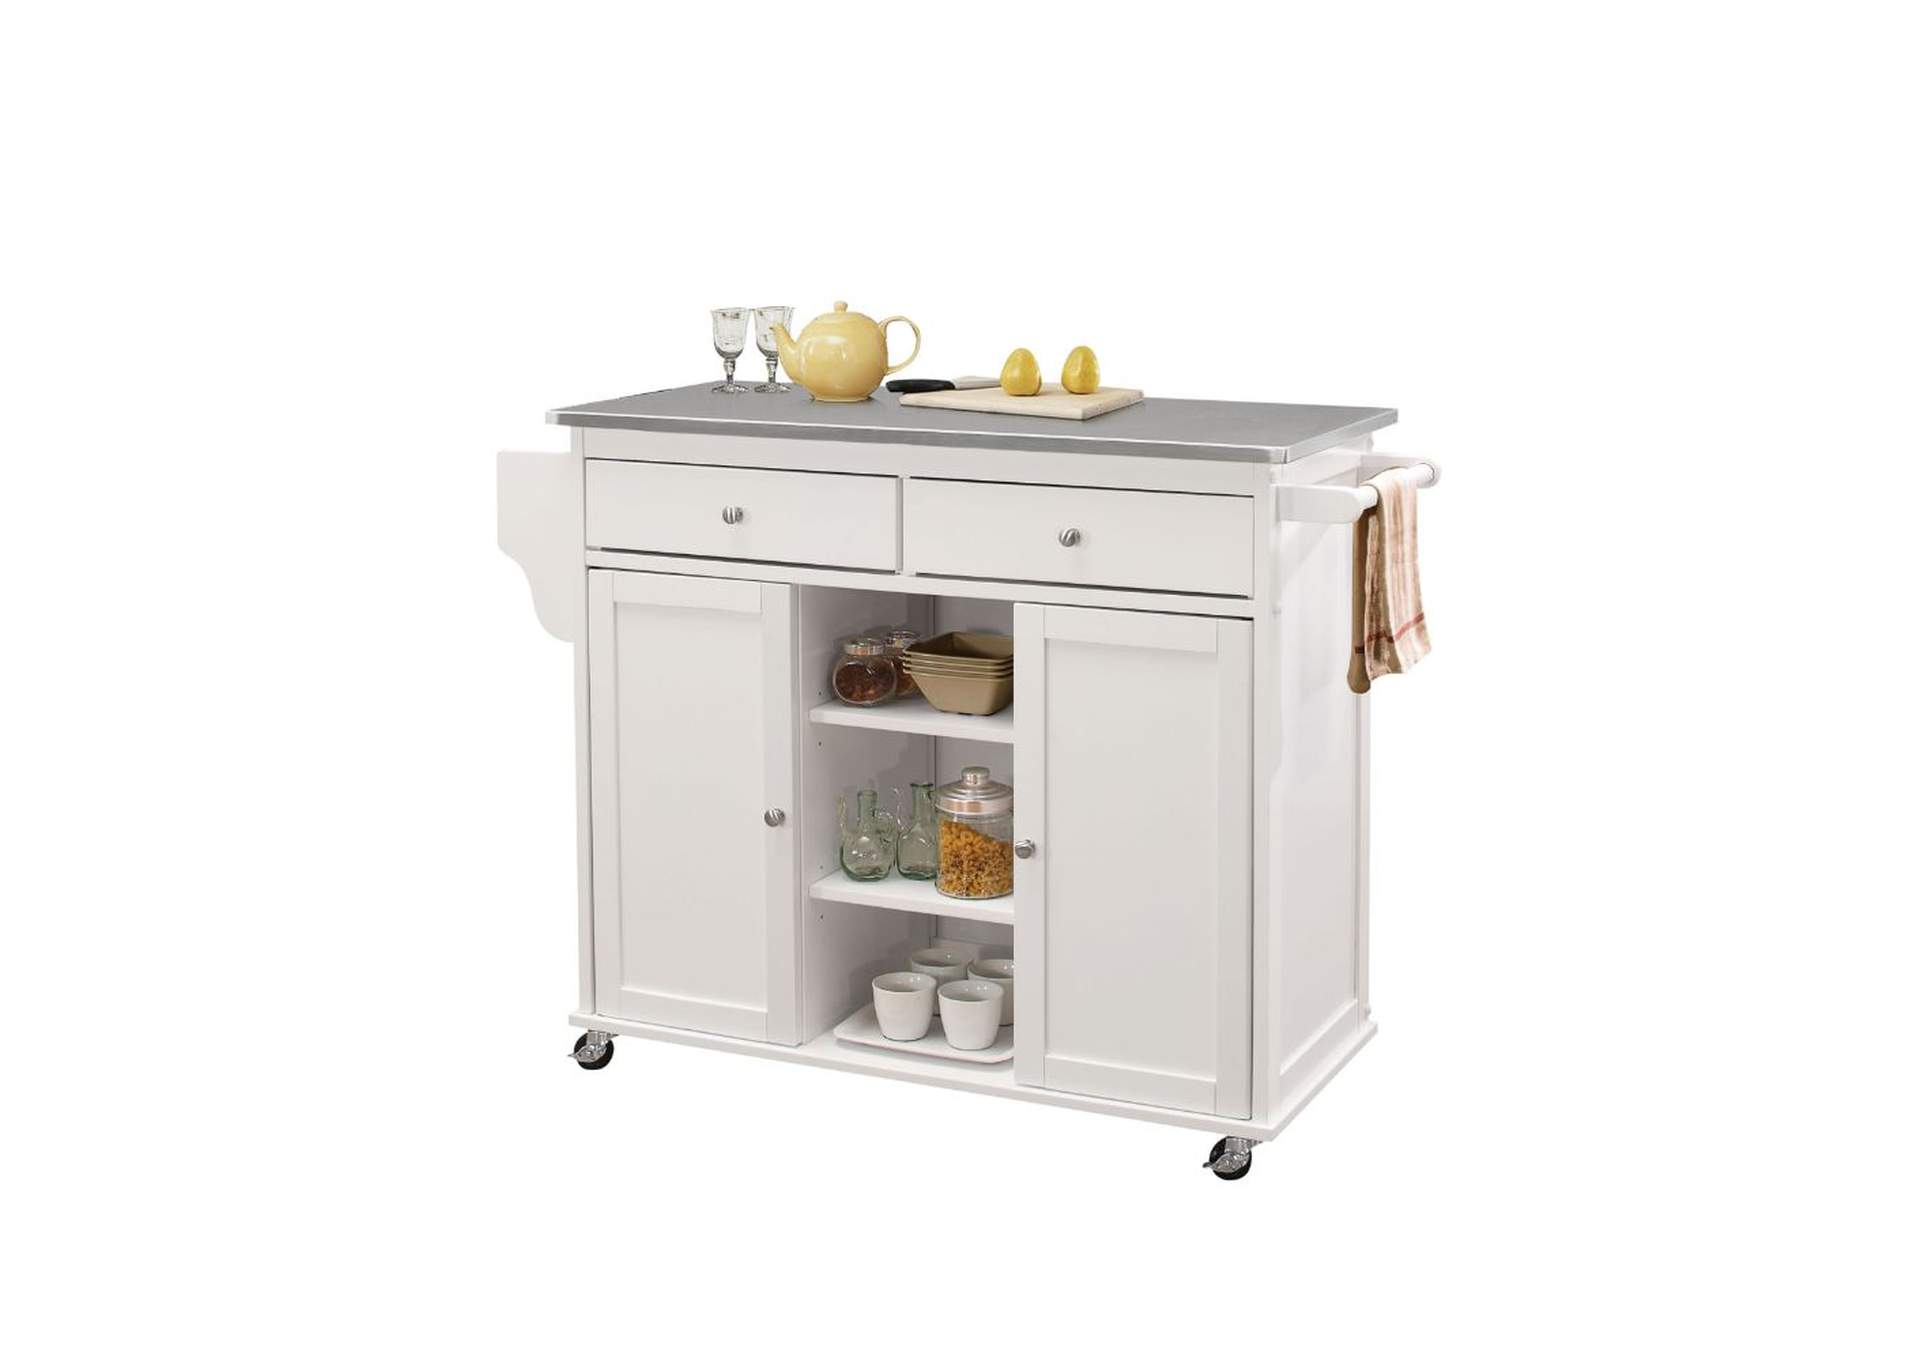 Tullarick Stainless Steel & White Kitchen Cart,Acme